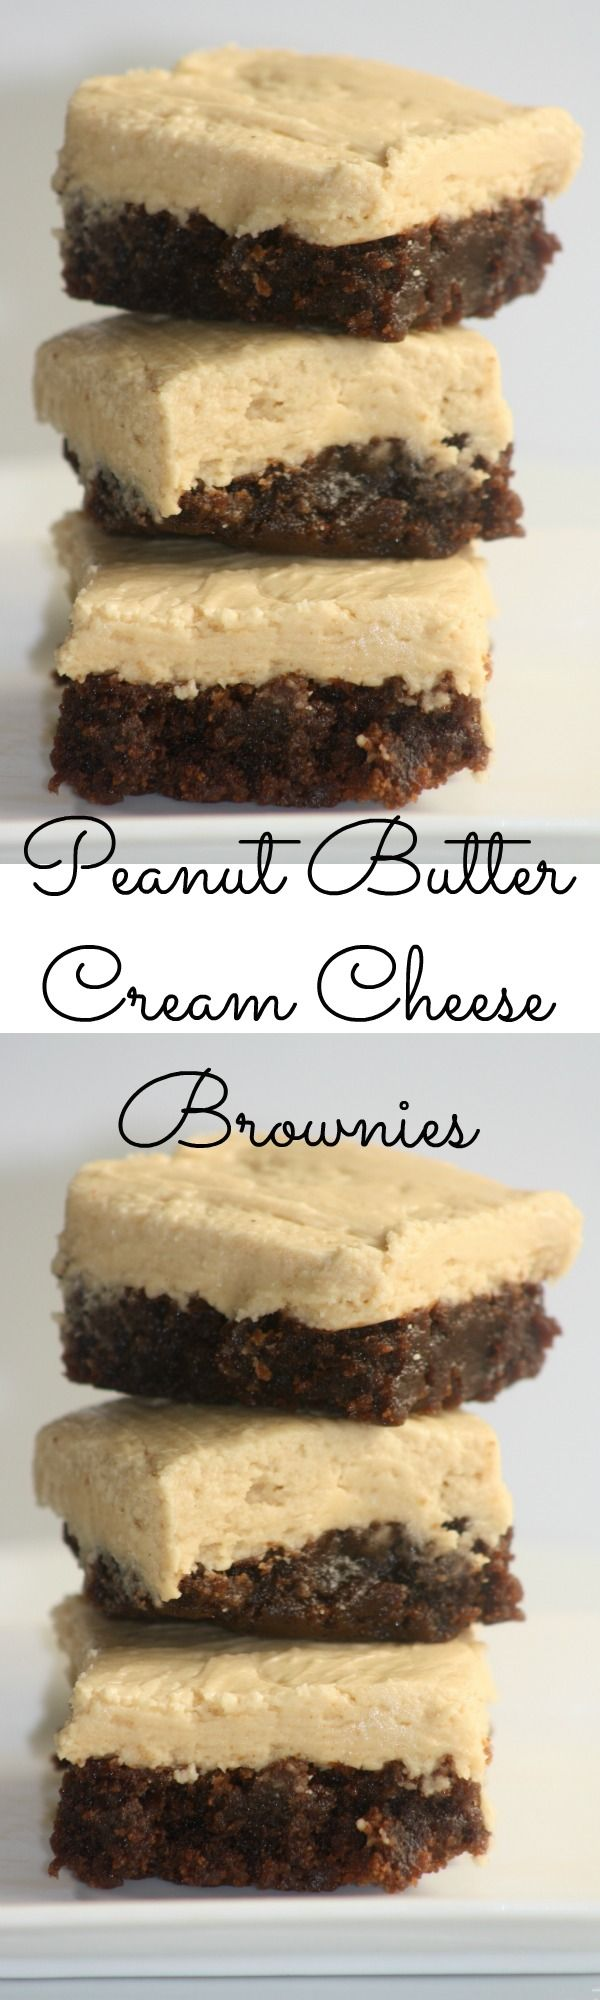 Peanut Butter Cream Cheese Brownies - These brownies are delicious and so easy to make!  |  www.sincerelyjean.com